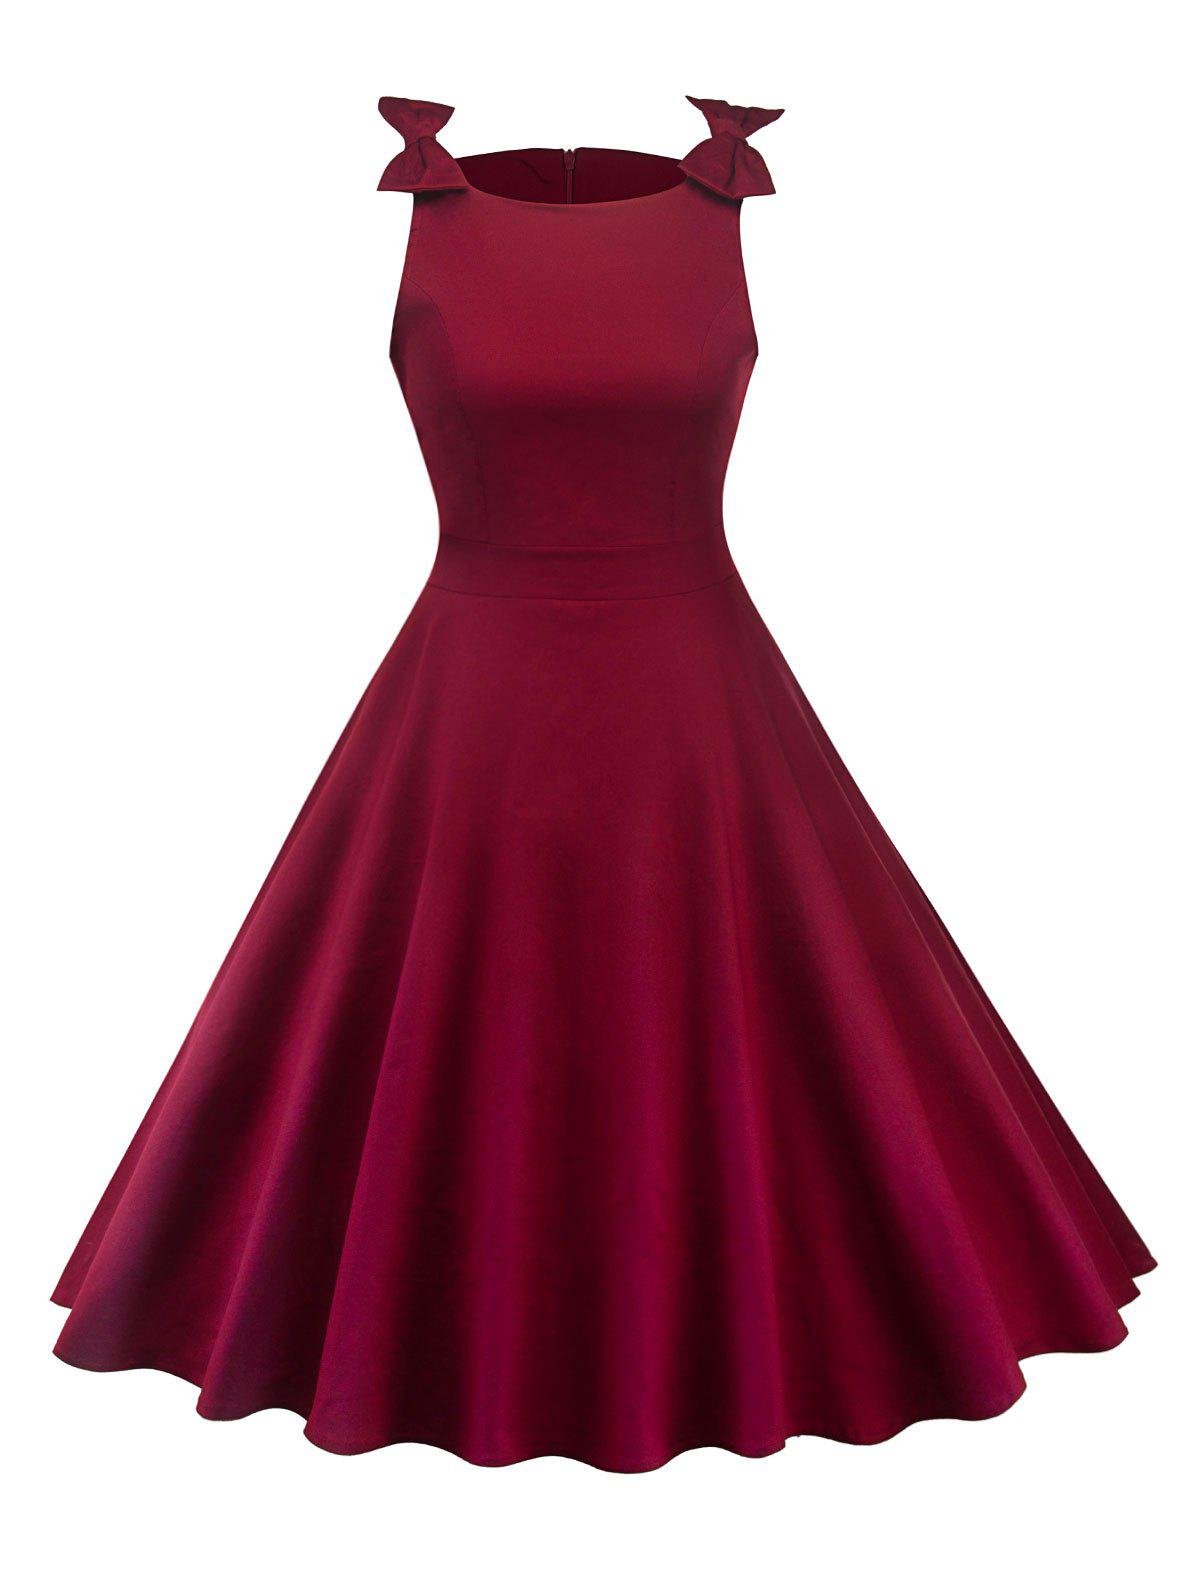 Sale Bowknot Insert Sleeveless Vintage Dress